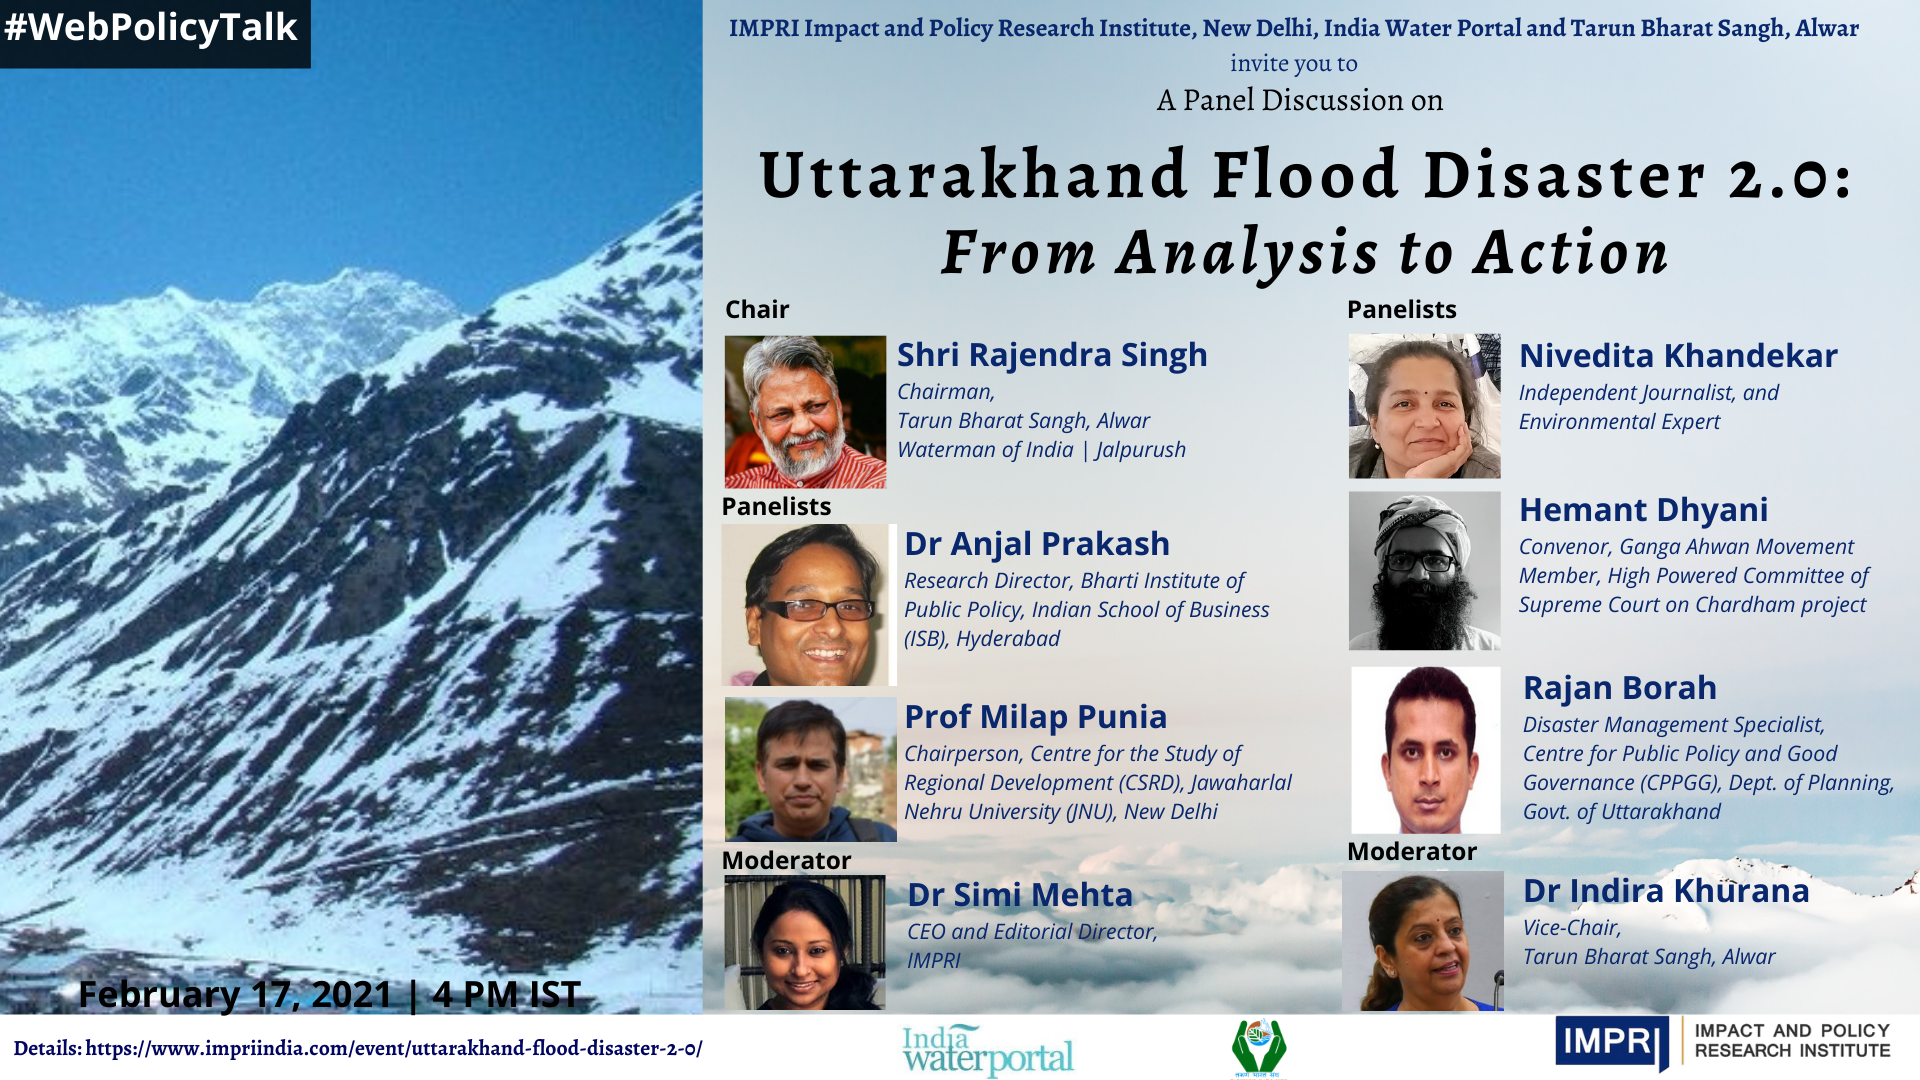 Uttarakhand Flood Disaster 2.0: From Analysis to Action